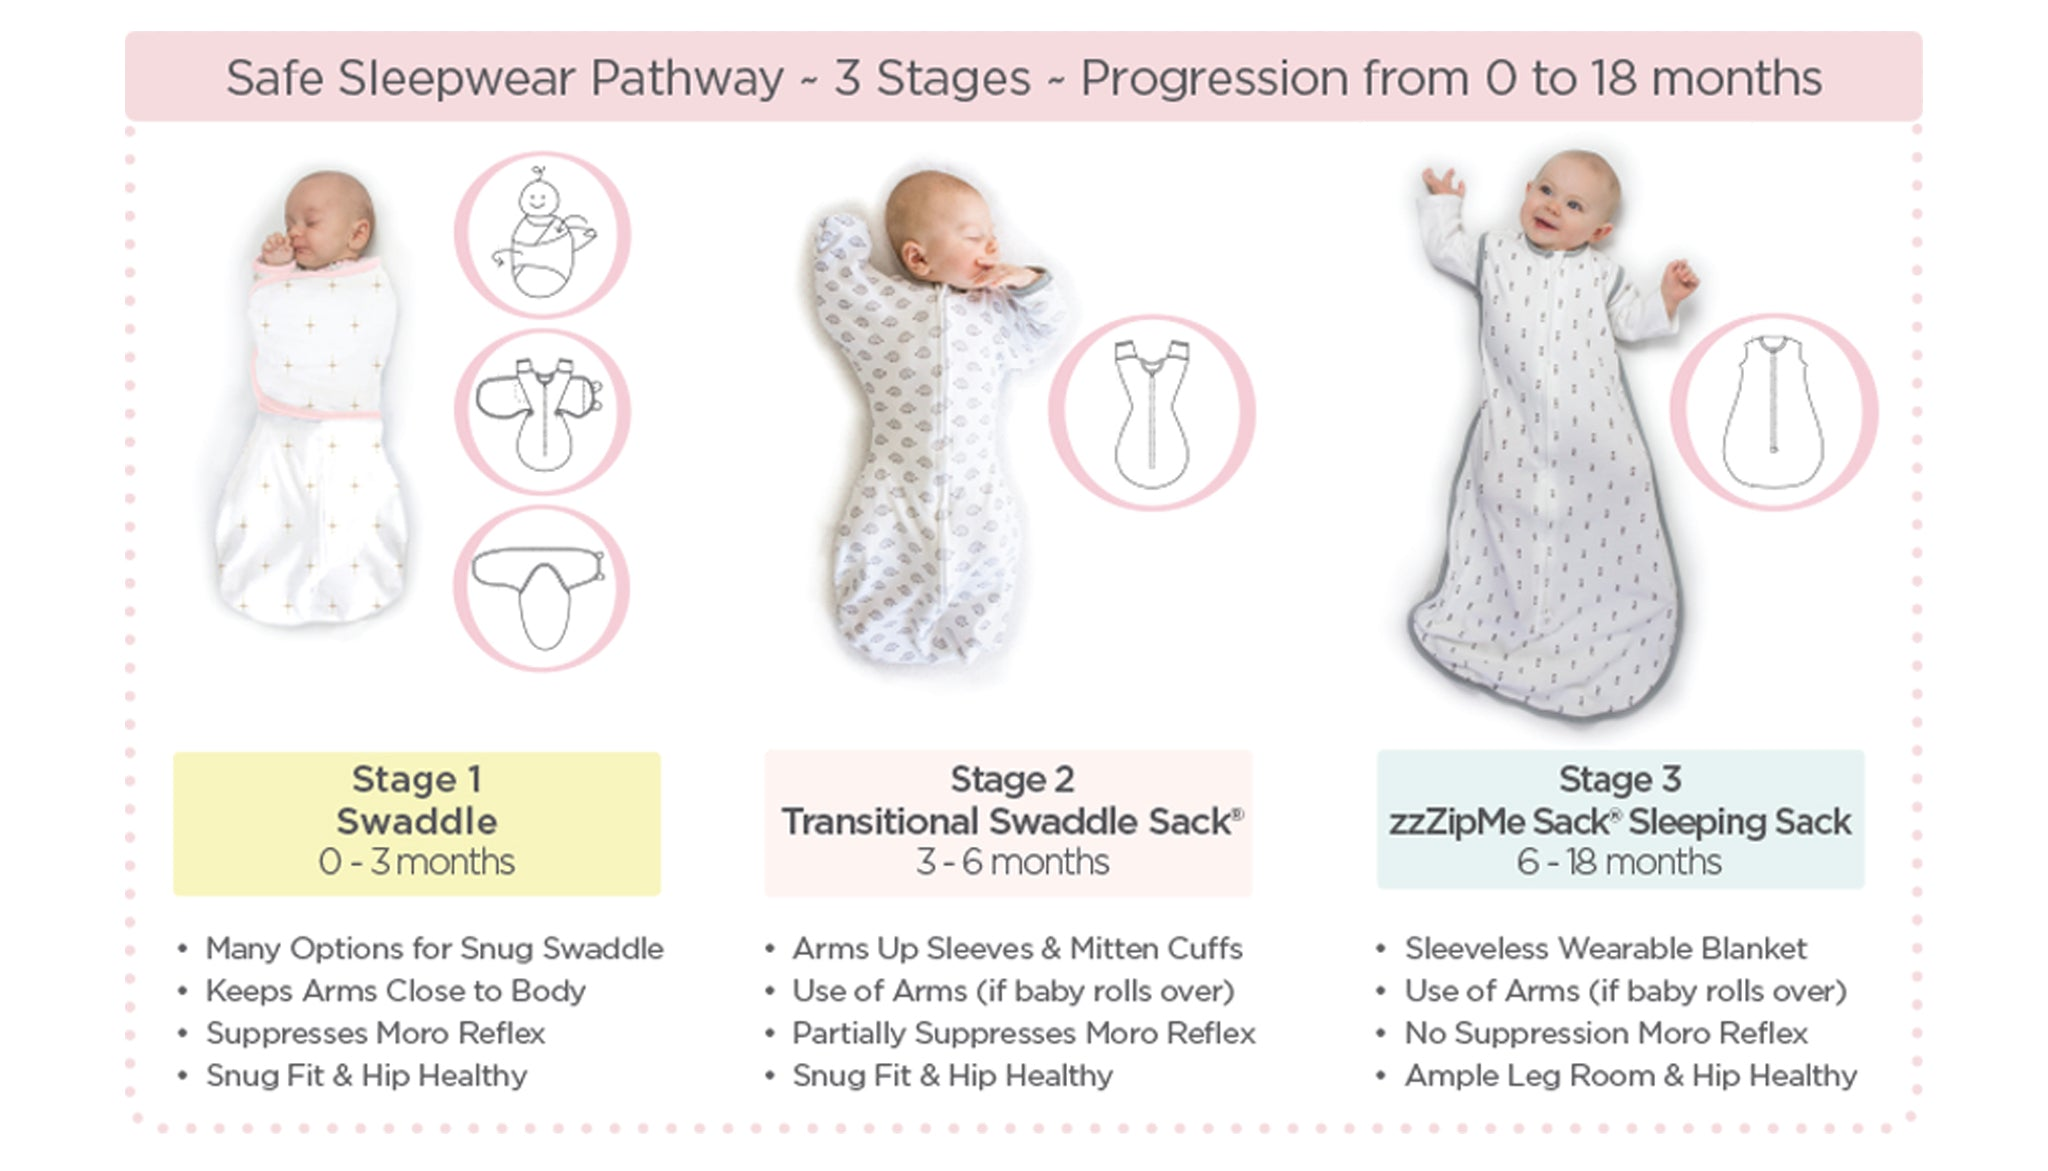 3 Stages Safe Sleepwear Pathway